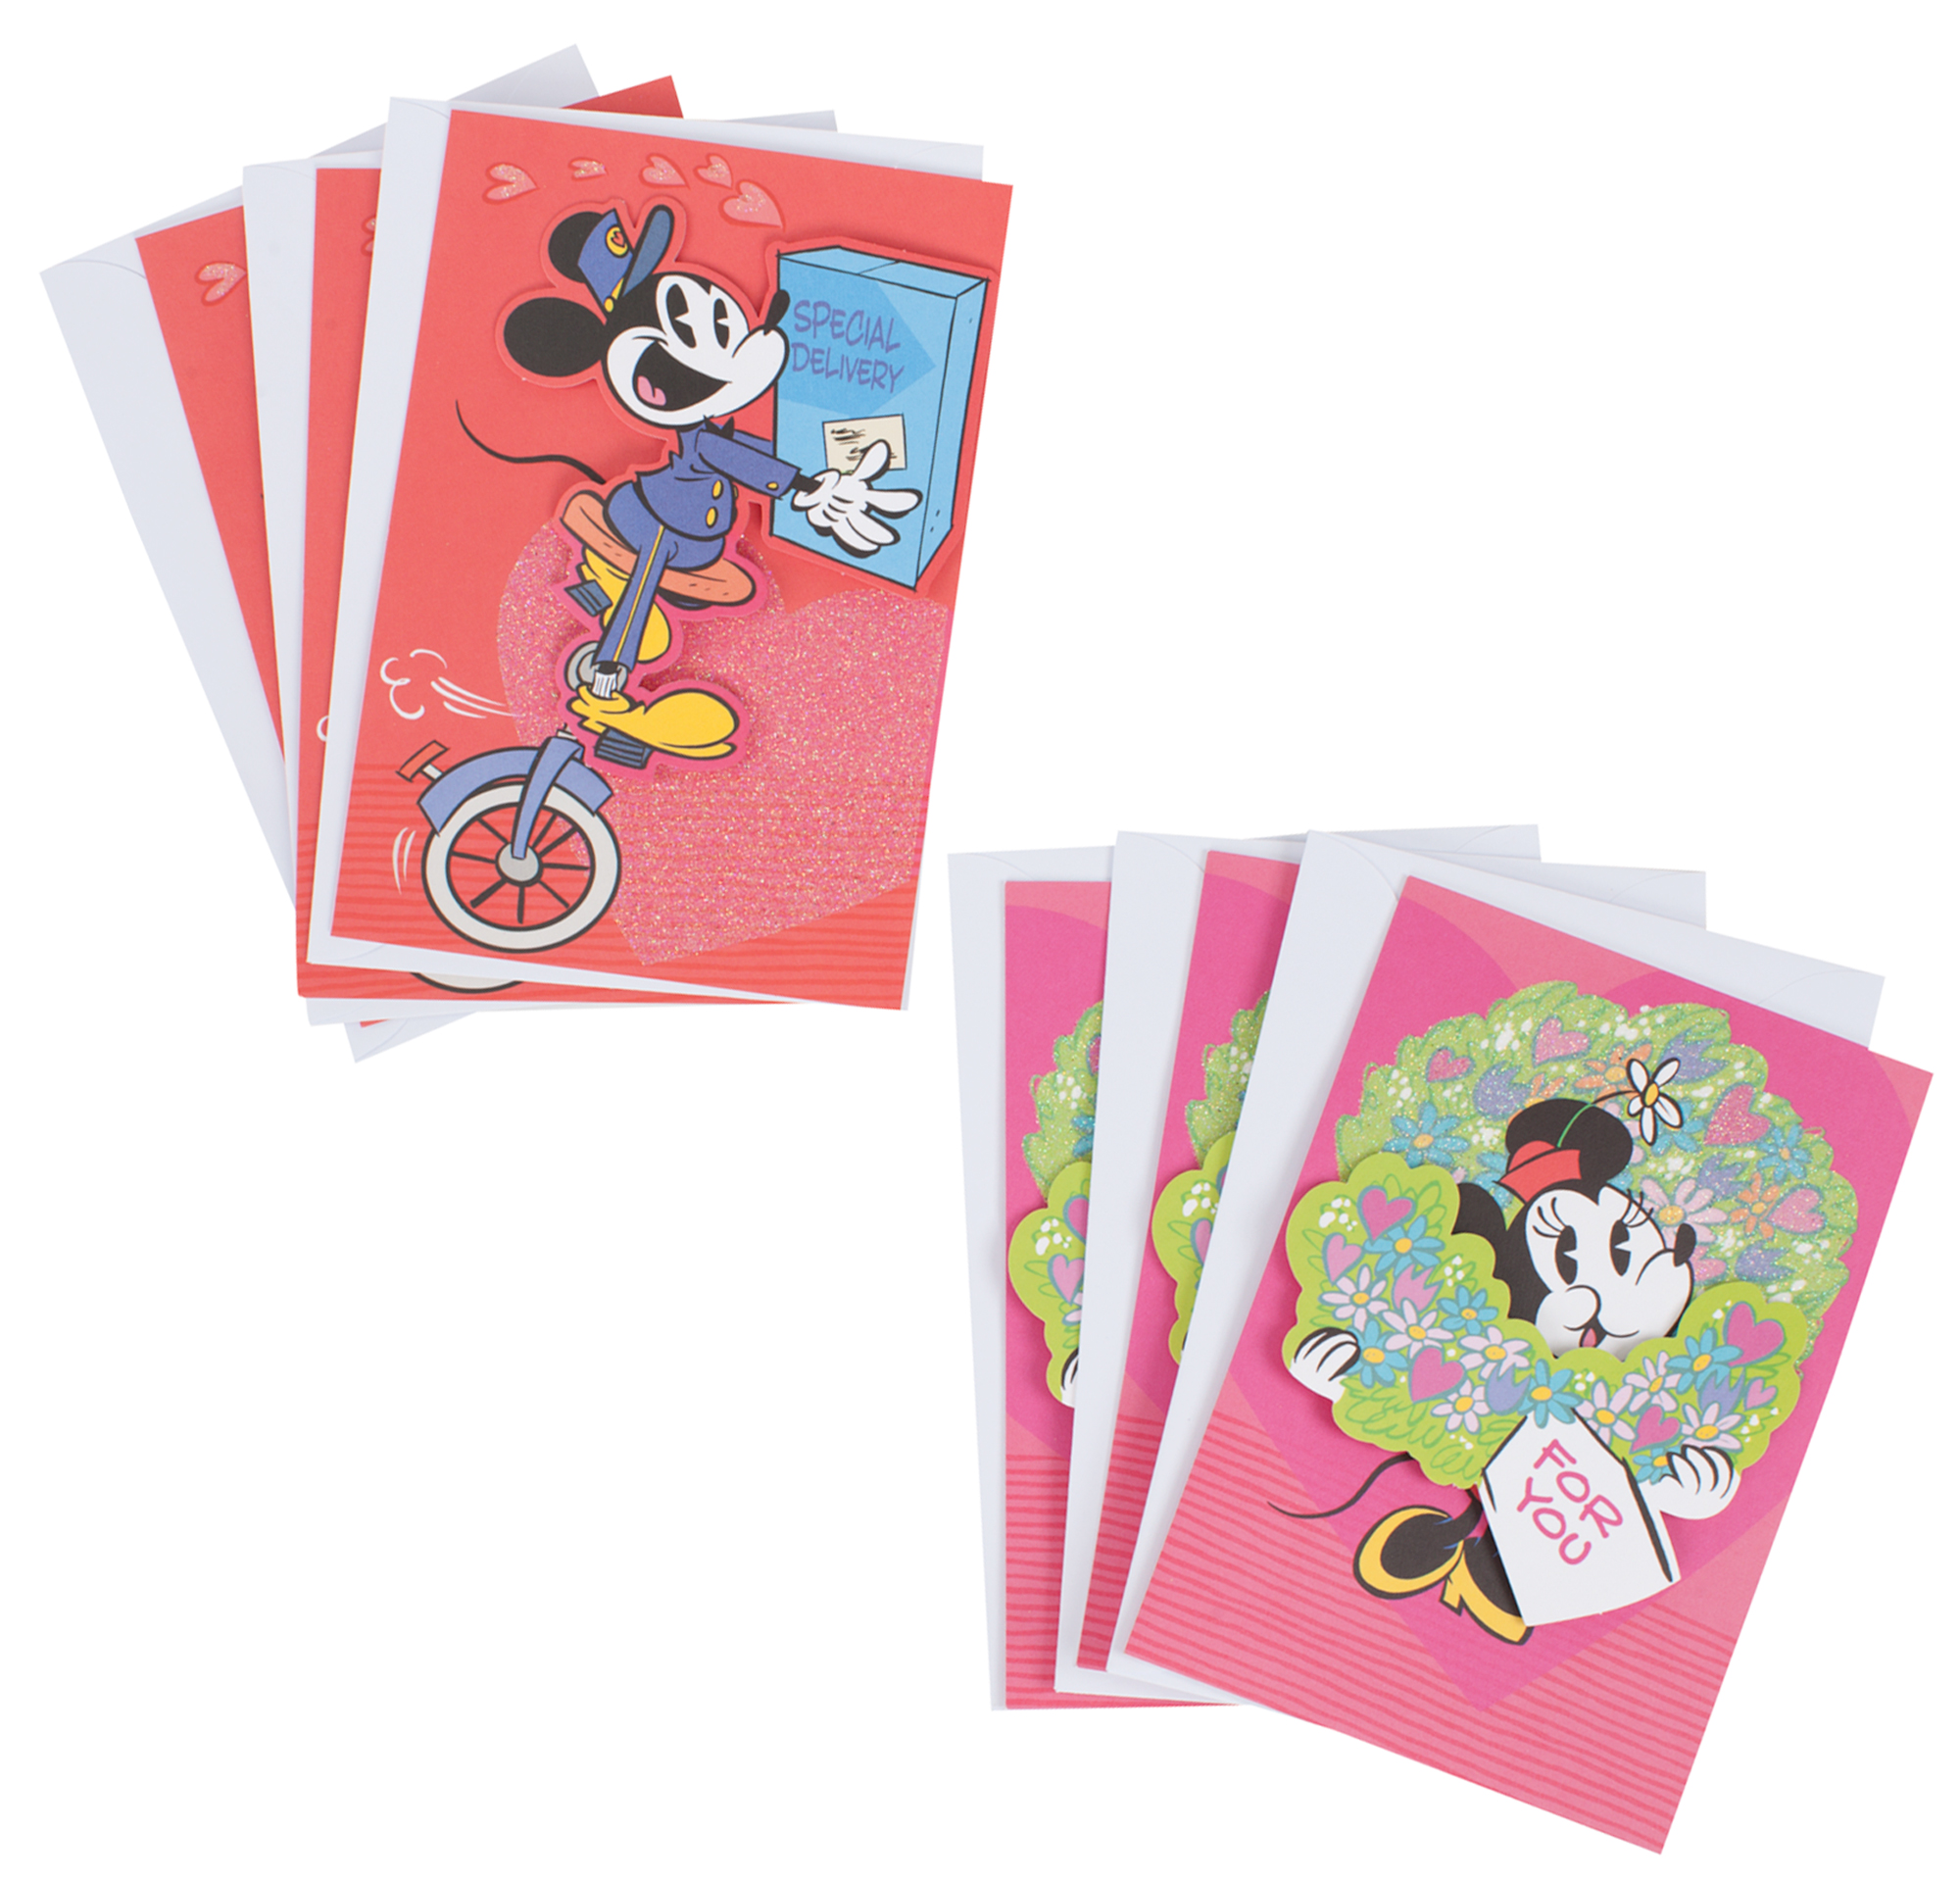 Hallmark Disney Valentine's Day Card Assortment, Mickey Mouse and Minnie Mouse (6 Cards with Envelopes)